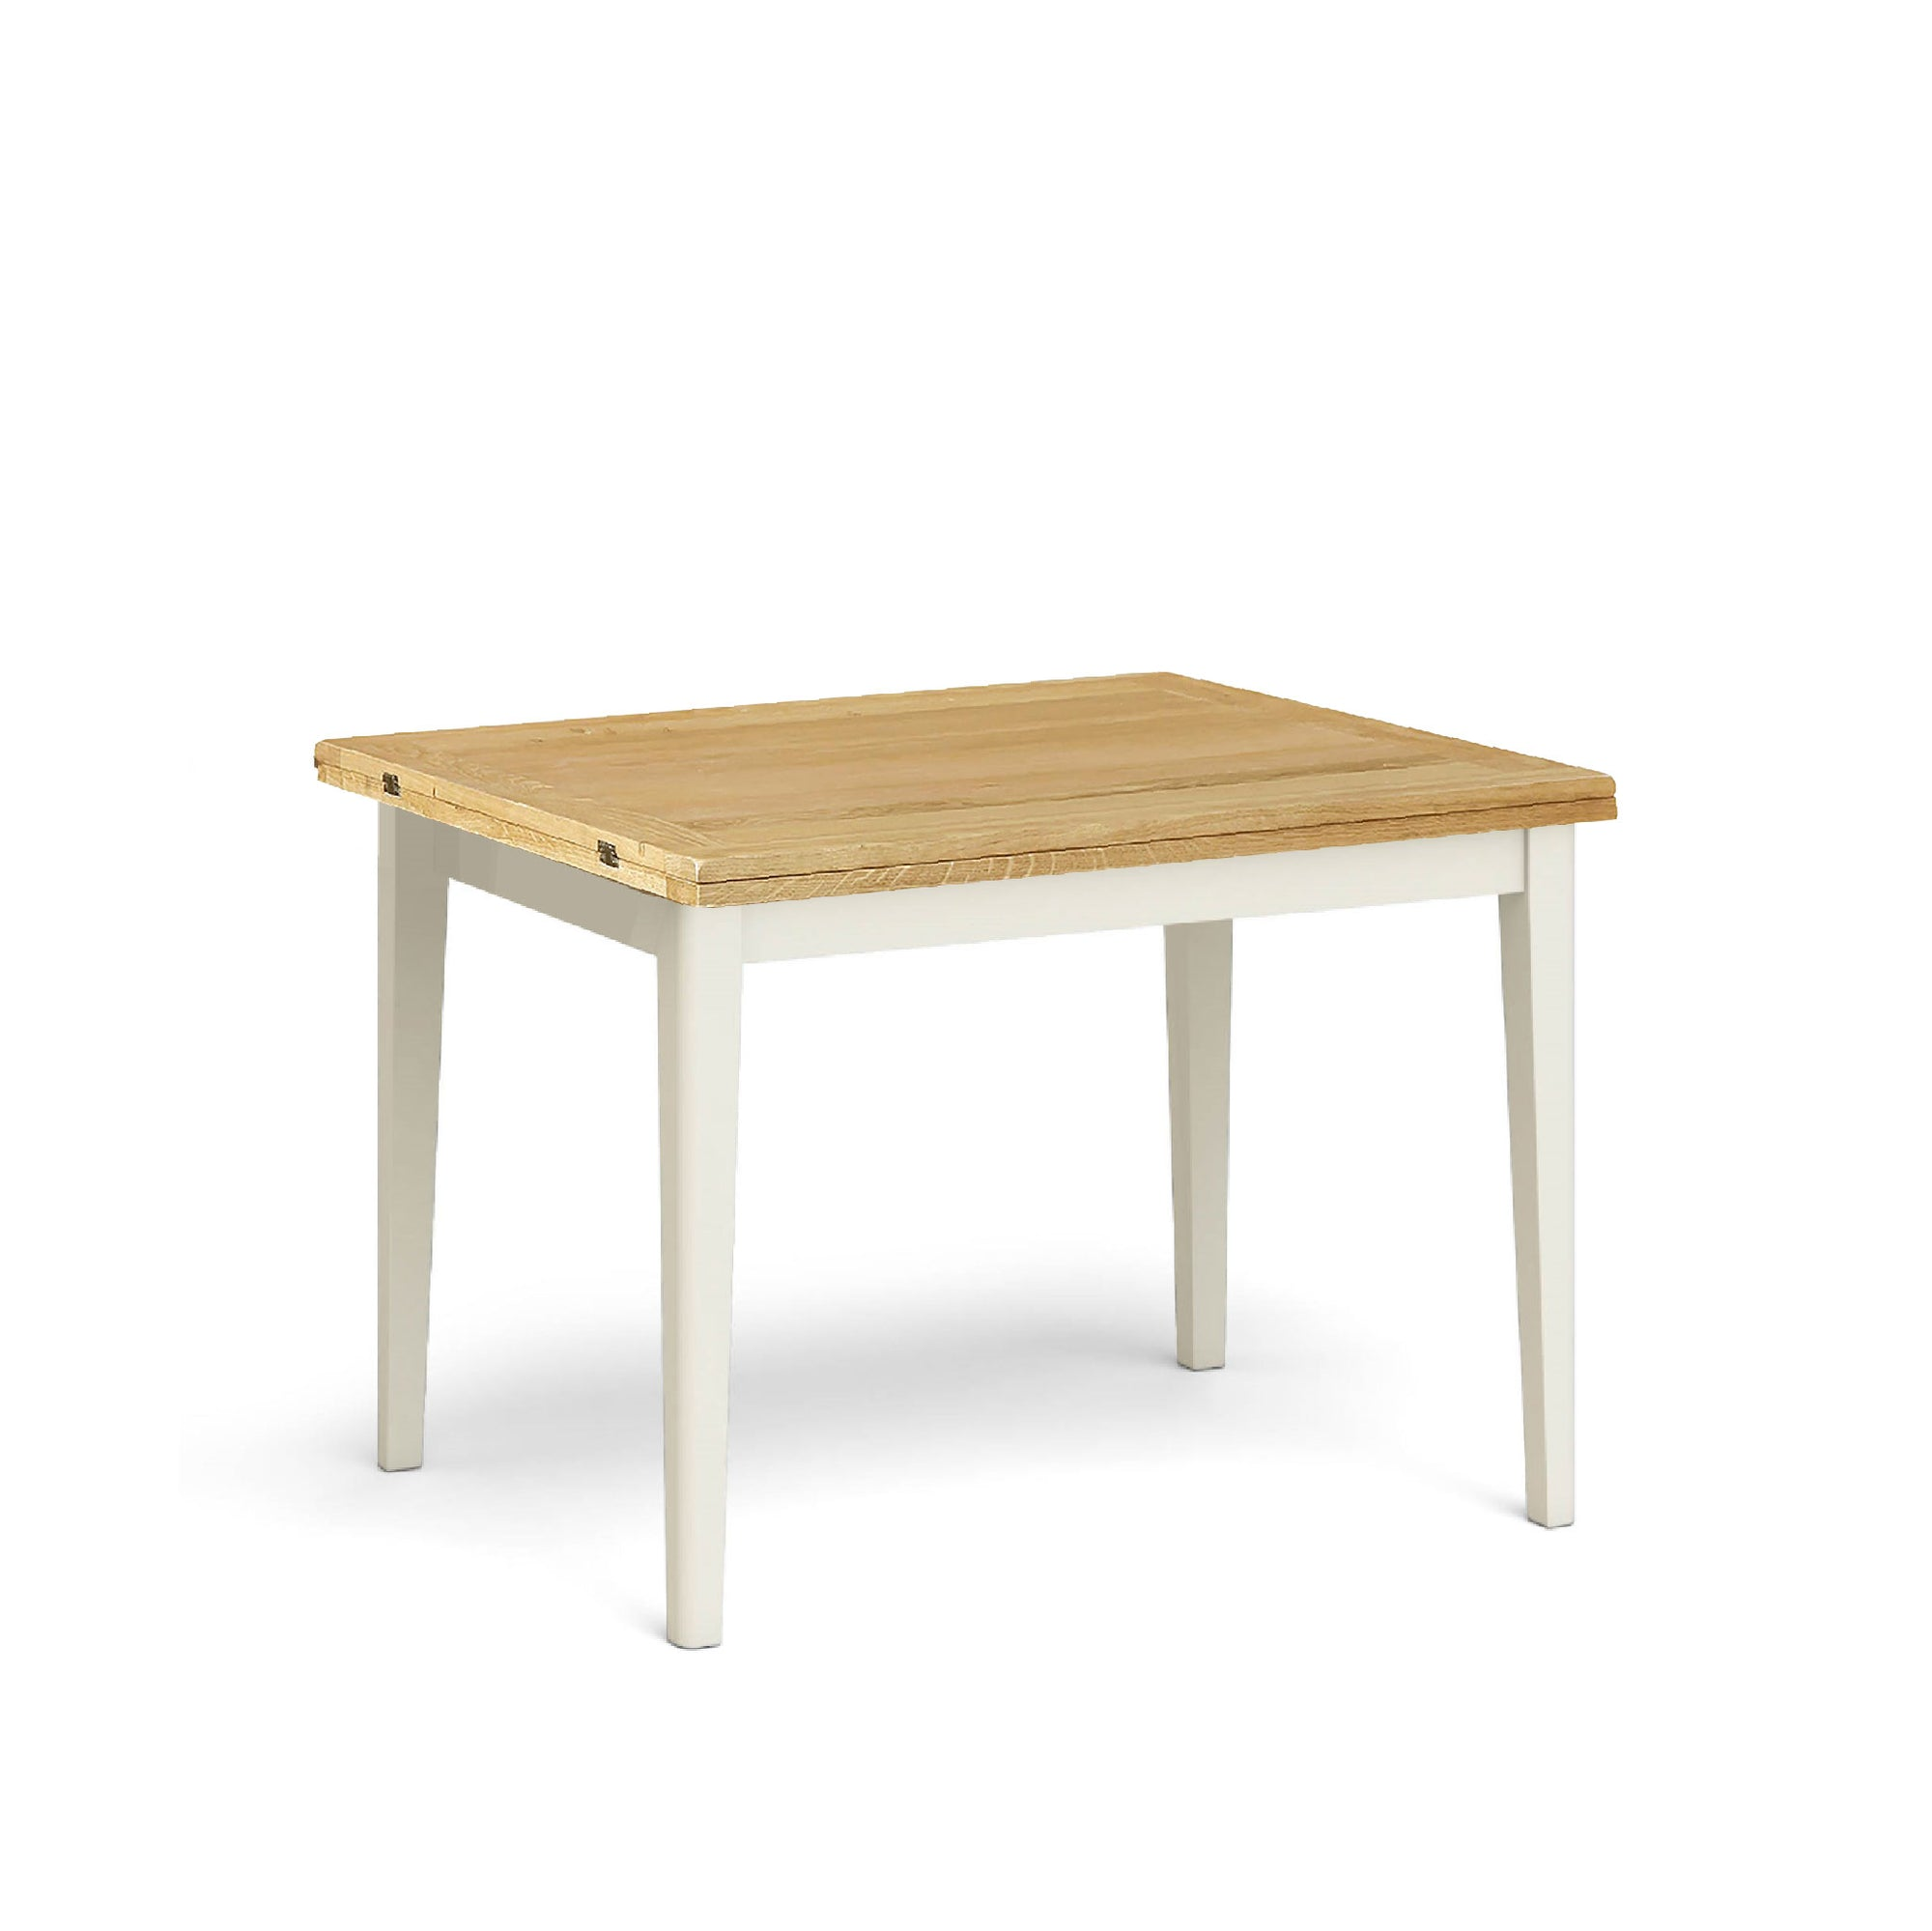 Windsor Cream Flip Top Dining Table by Roseland Furniture